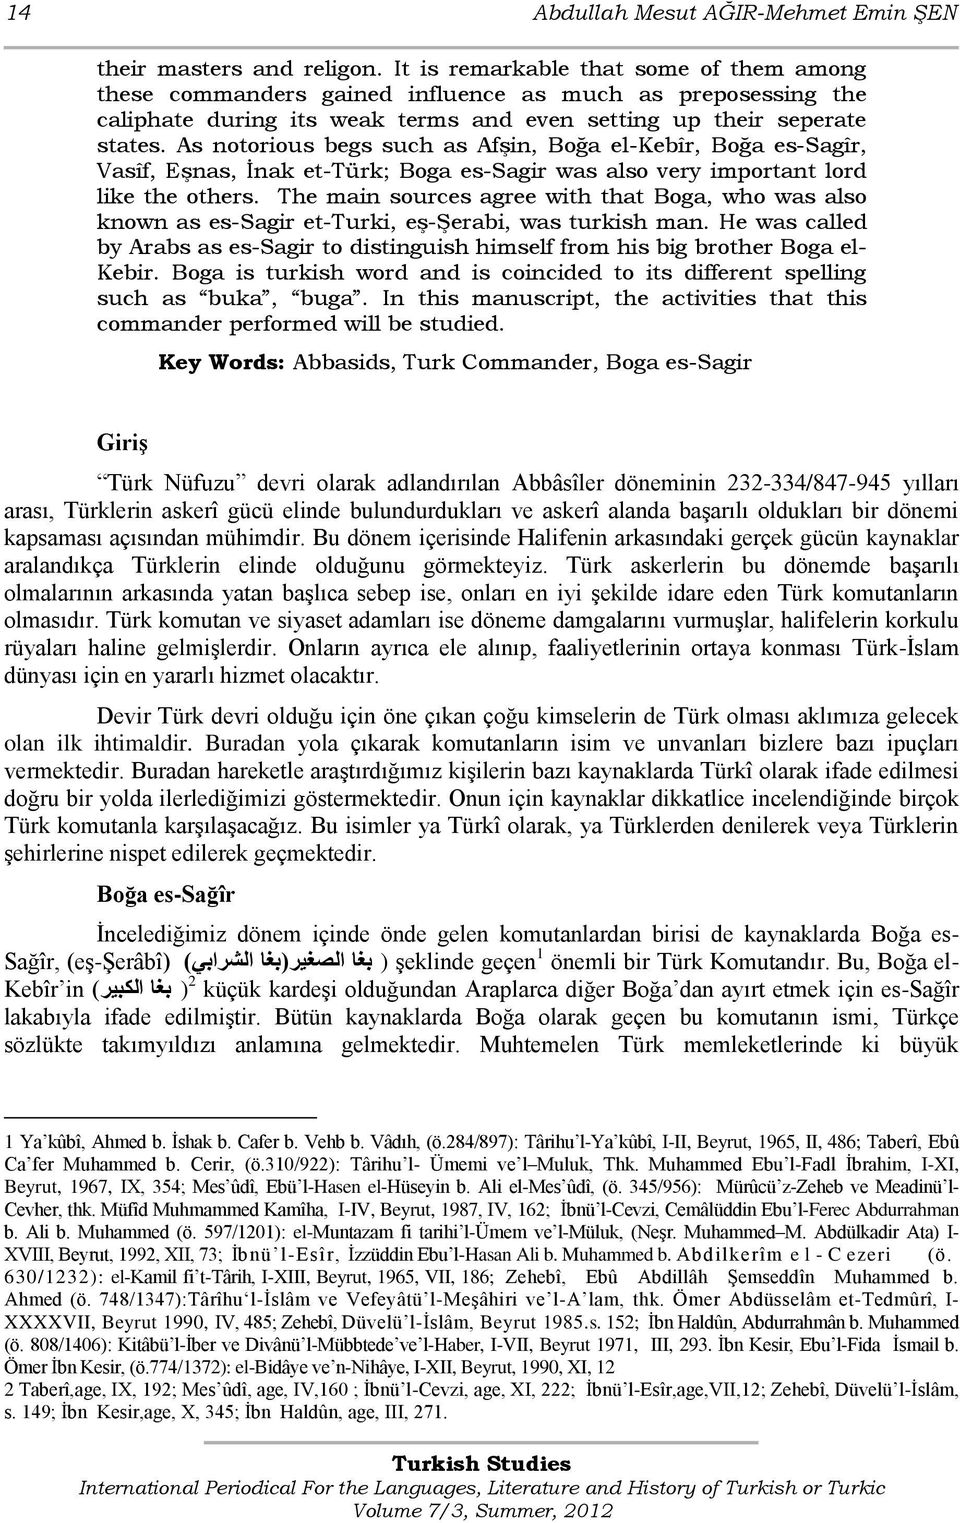 As notorious begs such as Afşin, Boğa el-kebîr, Boğa es-sagîr, Vasîf, Eşnas, İnak et-türk; Boga es-sagir was also very important lord like the others.